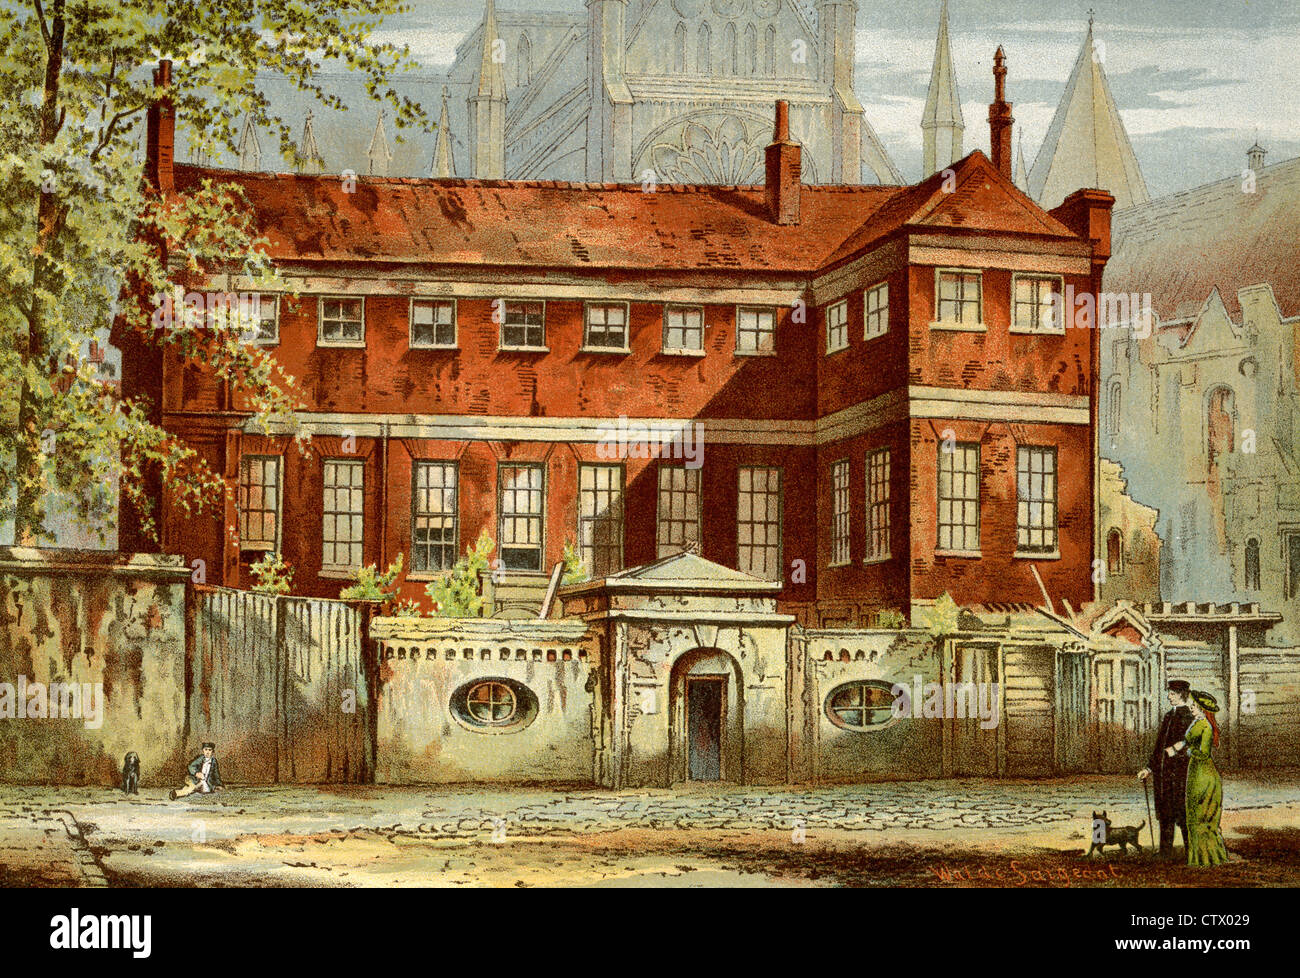 Vintage picture of old London. Ashburnham House, Dean's Yard, Westminster, designed by Inigo Jones. After Waldo - Stock Image